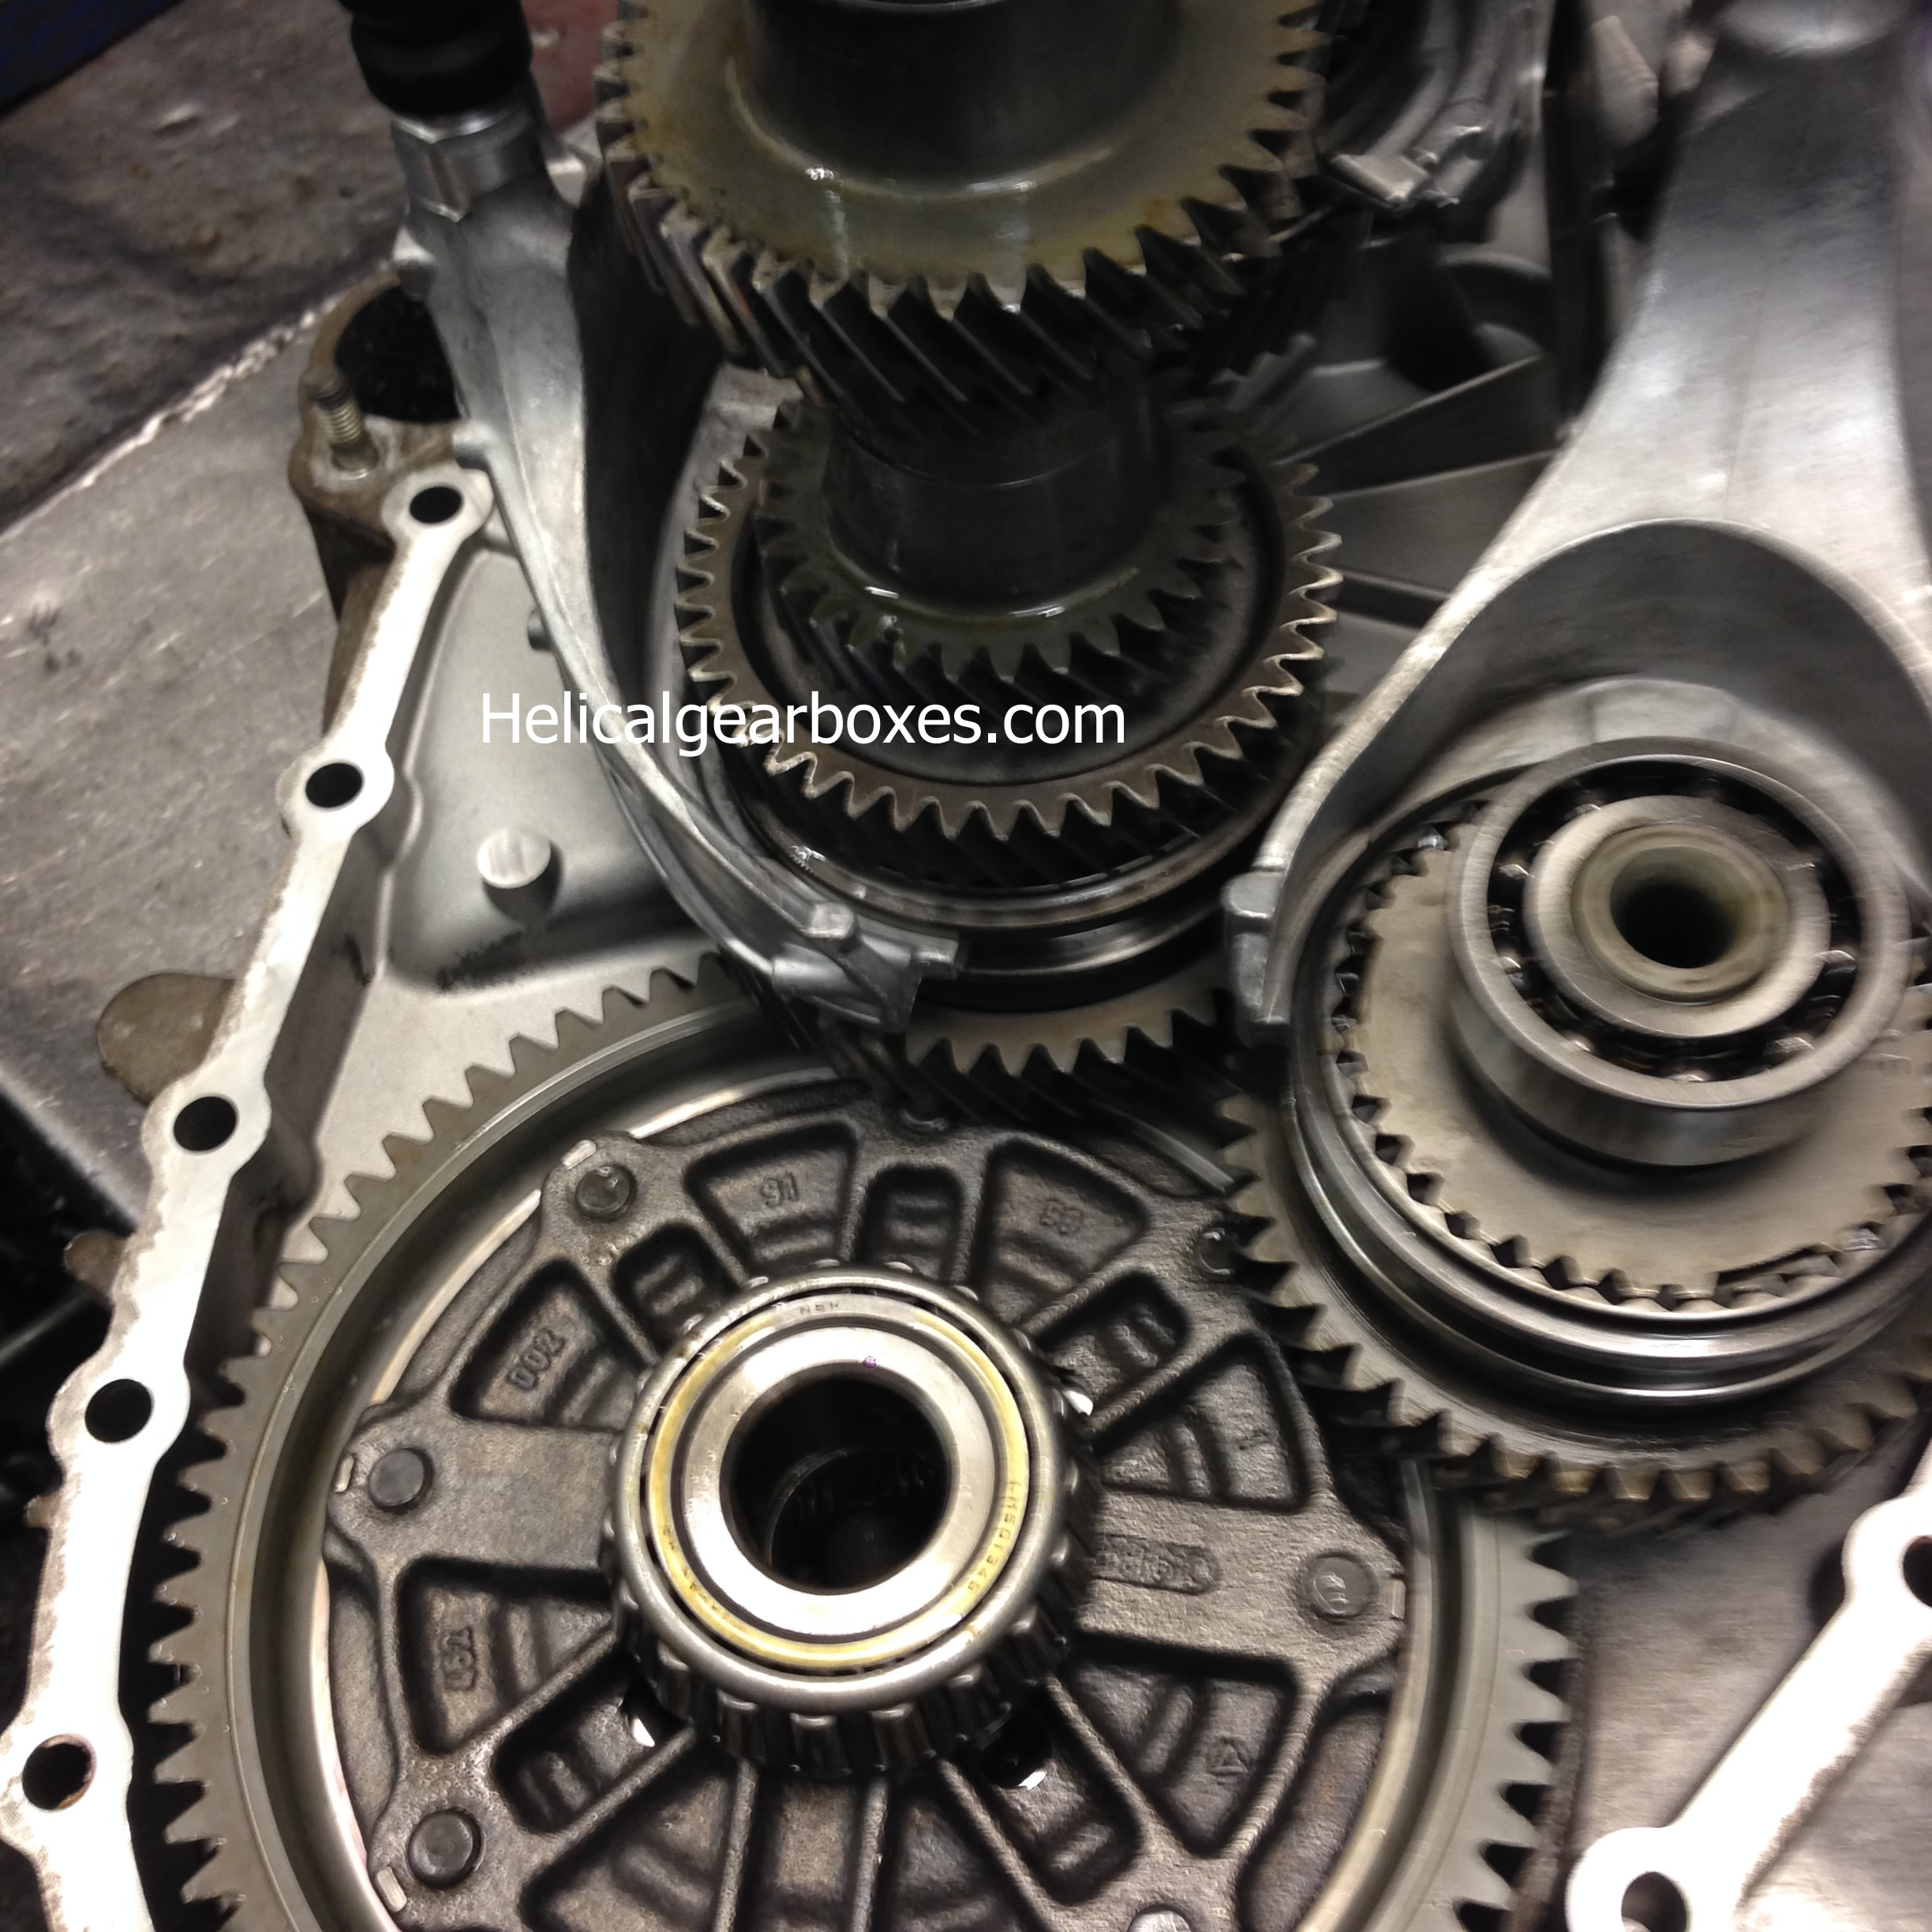 6 SPEED BMW MINI GEARBOX PROBLEMS